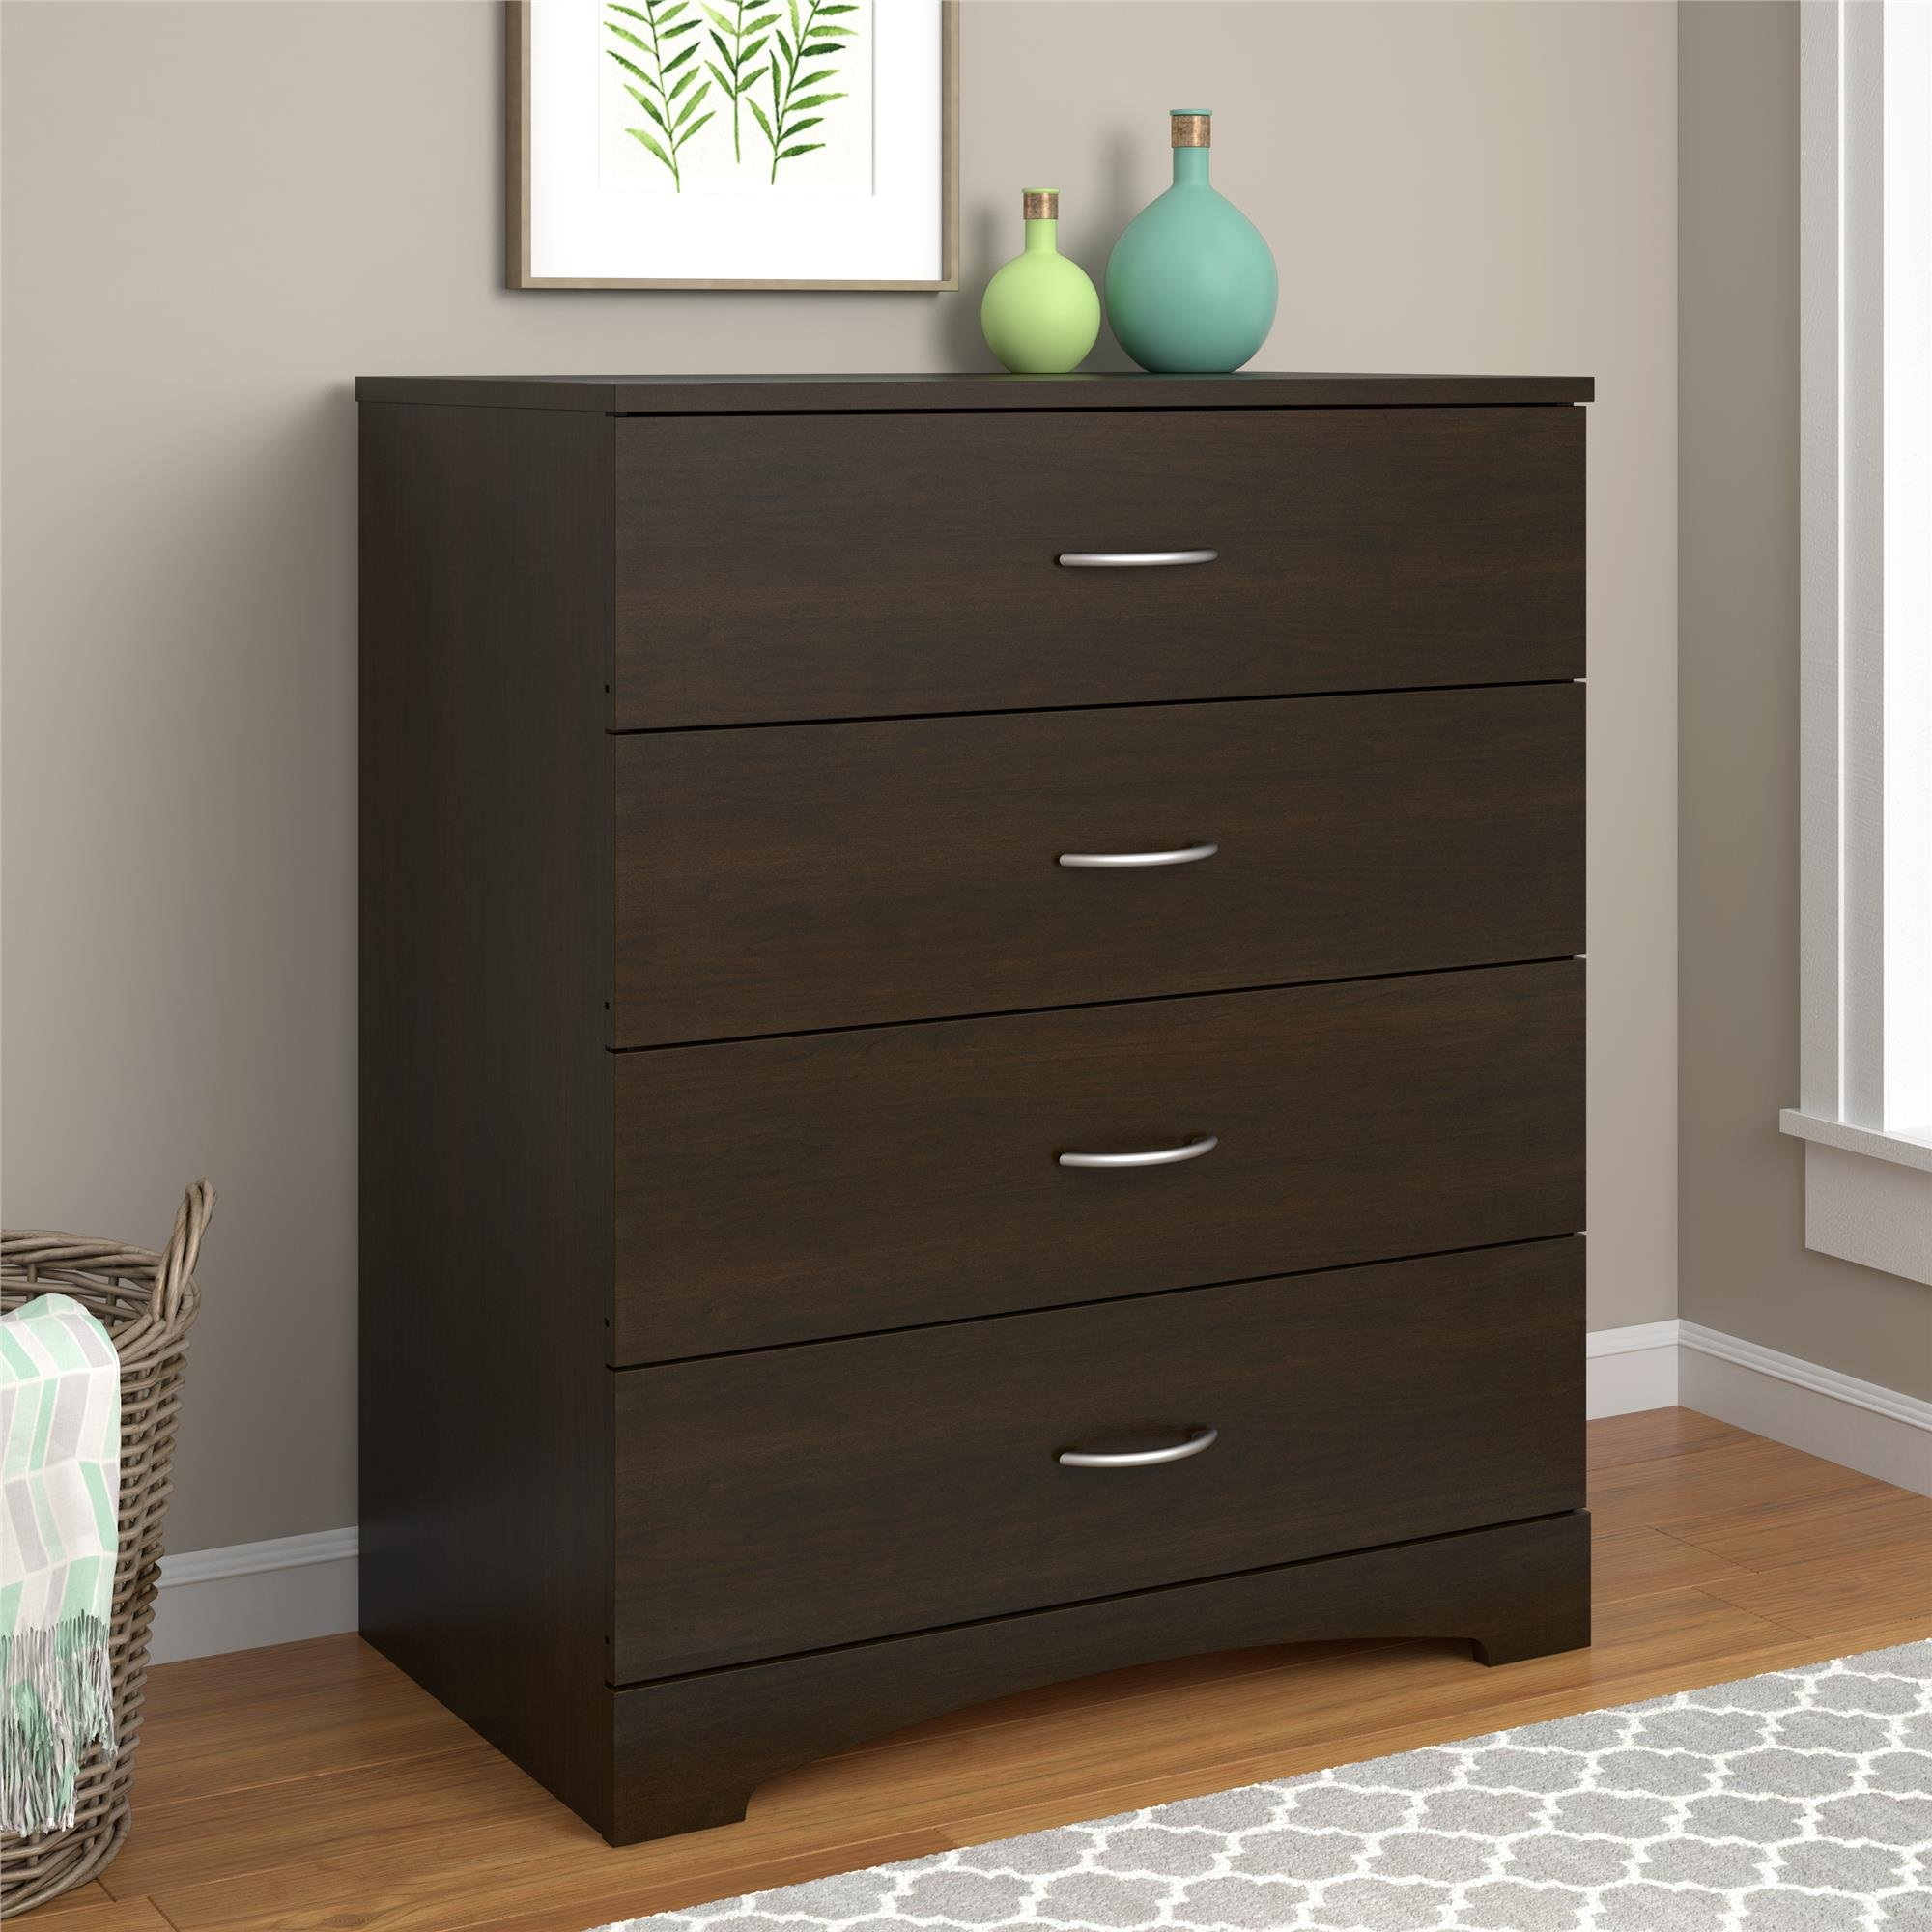 Ameriwood Home Crescent Point 4 Drawer Dresser, Espresso by Ameriwood Home